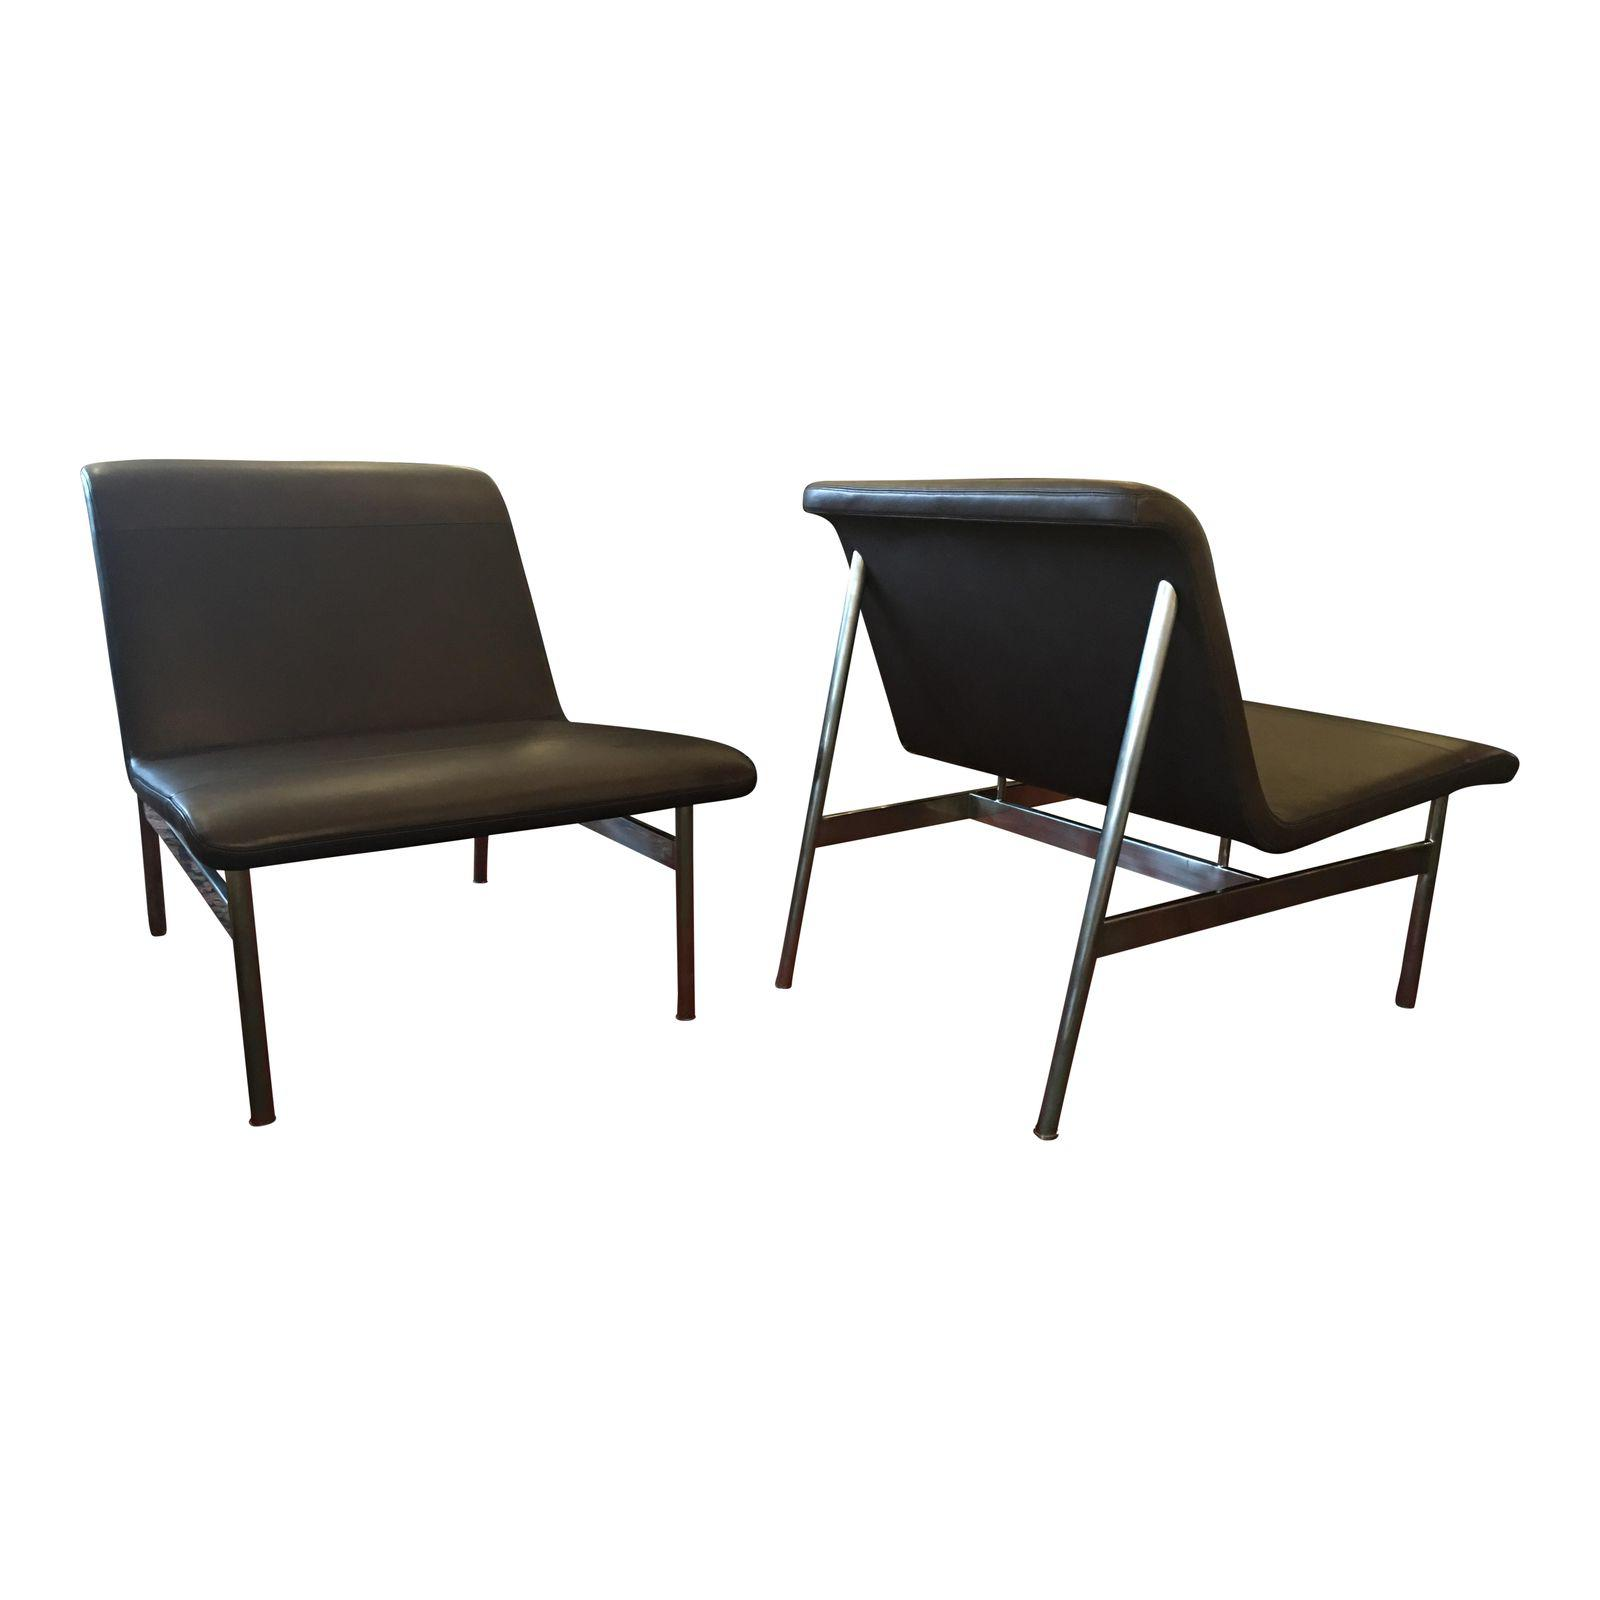 NEW Bernhardt CP2 Leather + Chrome Lounge Chairs, A Pair. Original Price:  $4,890.00   Design Plus Gallery